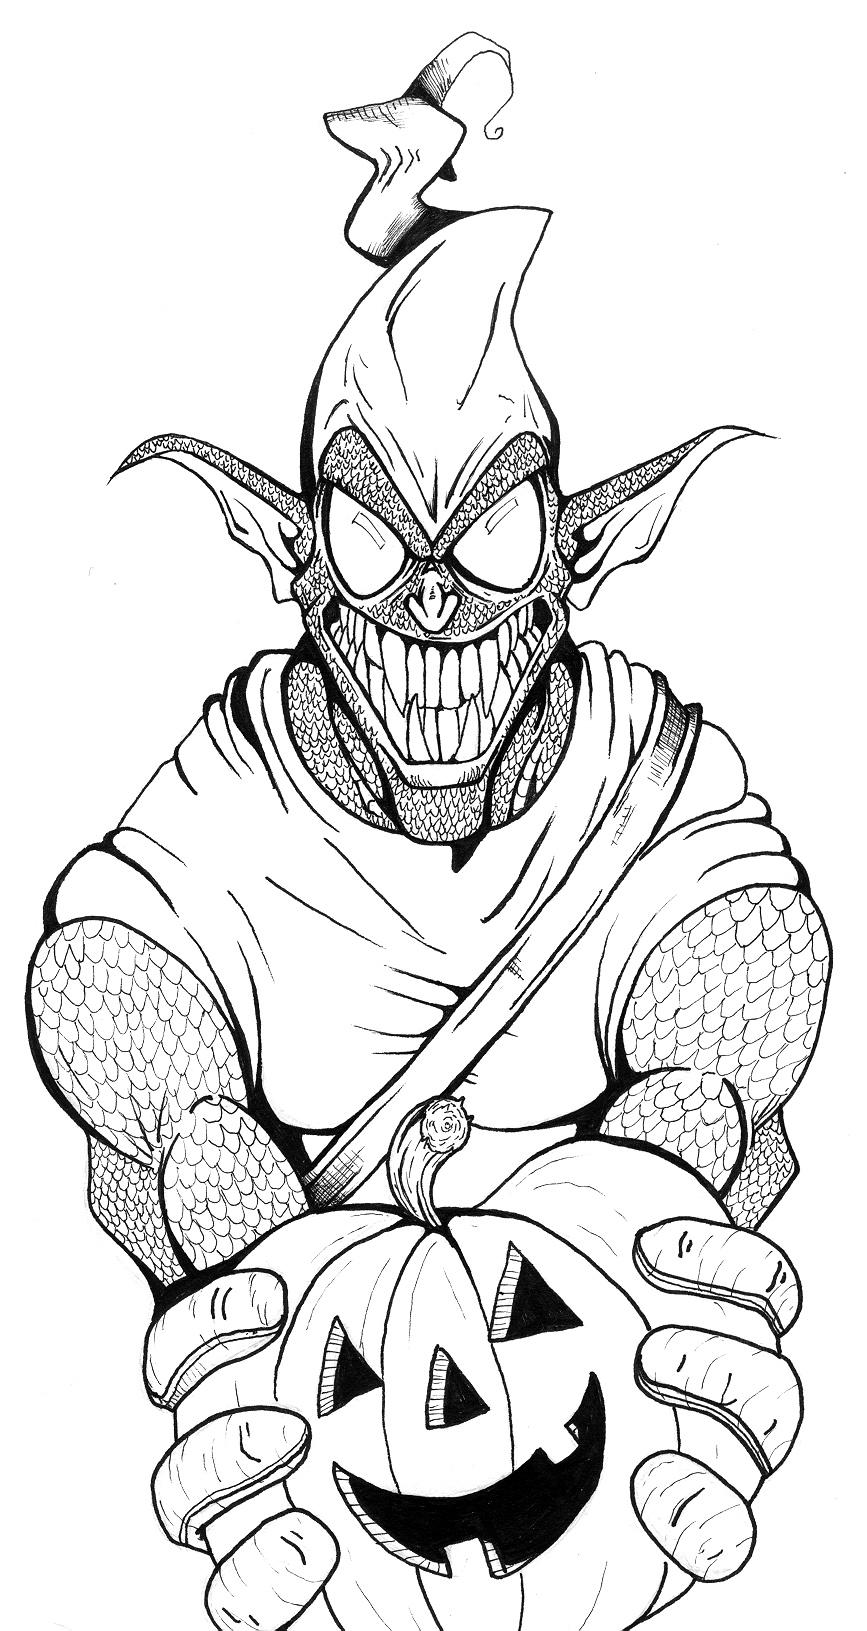 green goblin coloring pages the green goblin by petex on deviantart